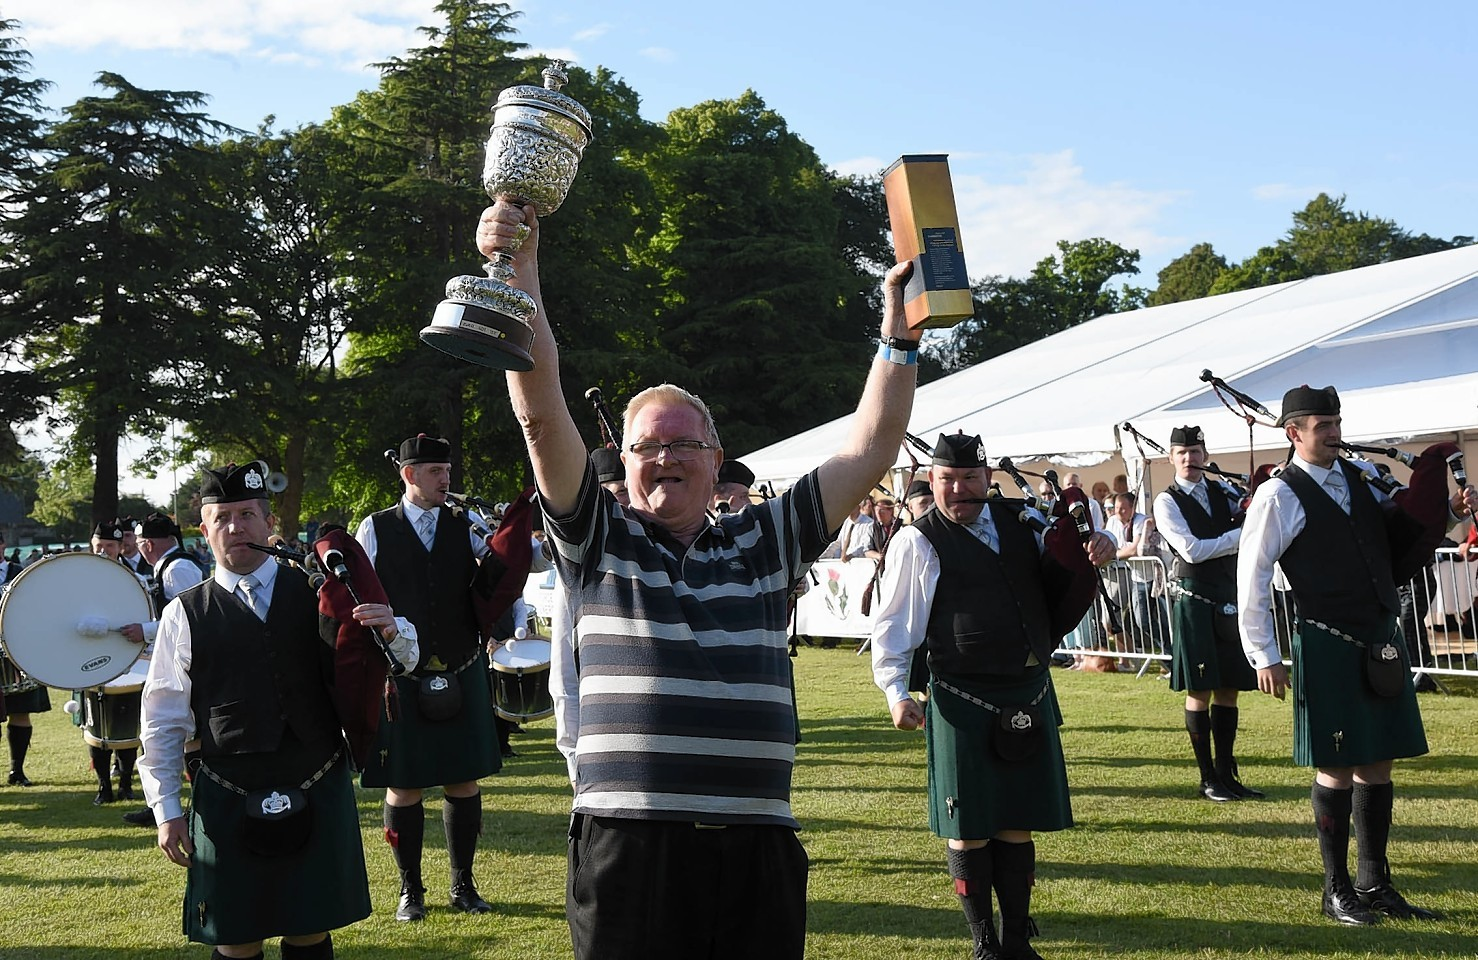 The European Championship trophy is paraded before the St Lawrence O'Toole Pipe Band from Dublin.